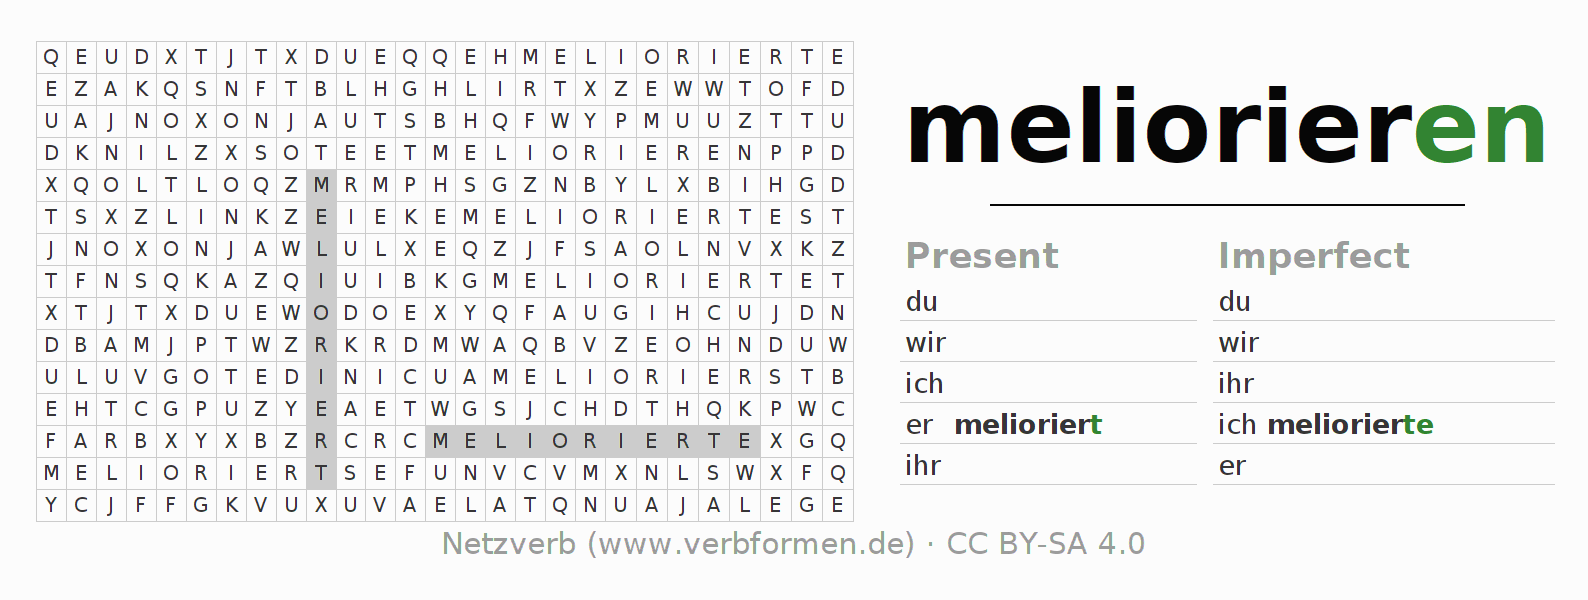 Word search puzzle for the conjugation of the verb meliorieren